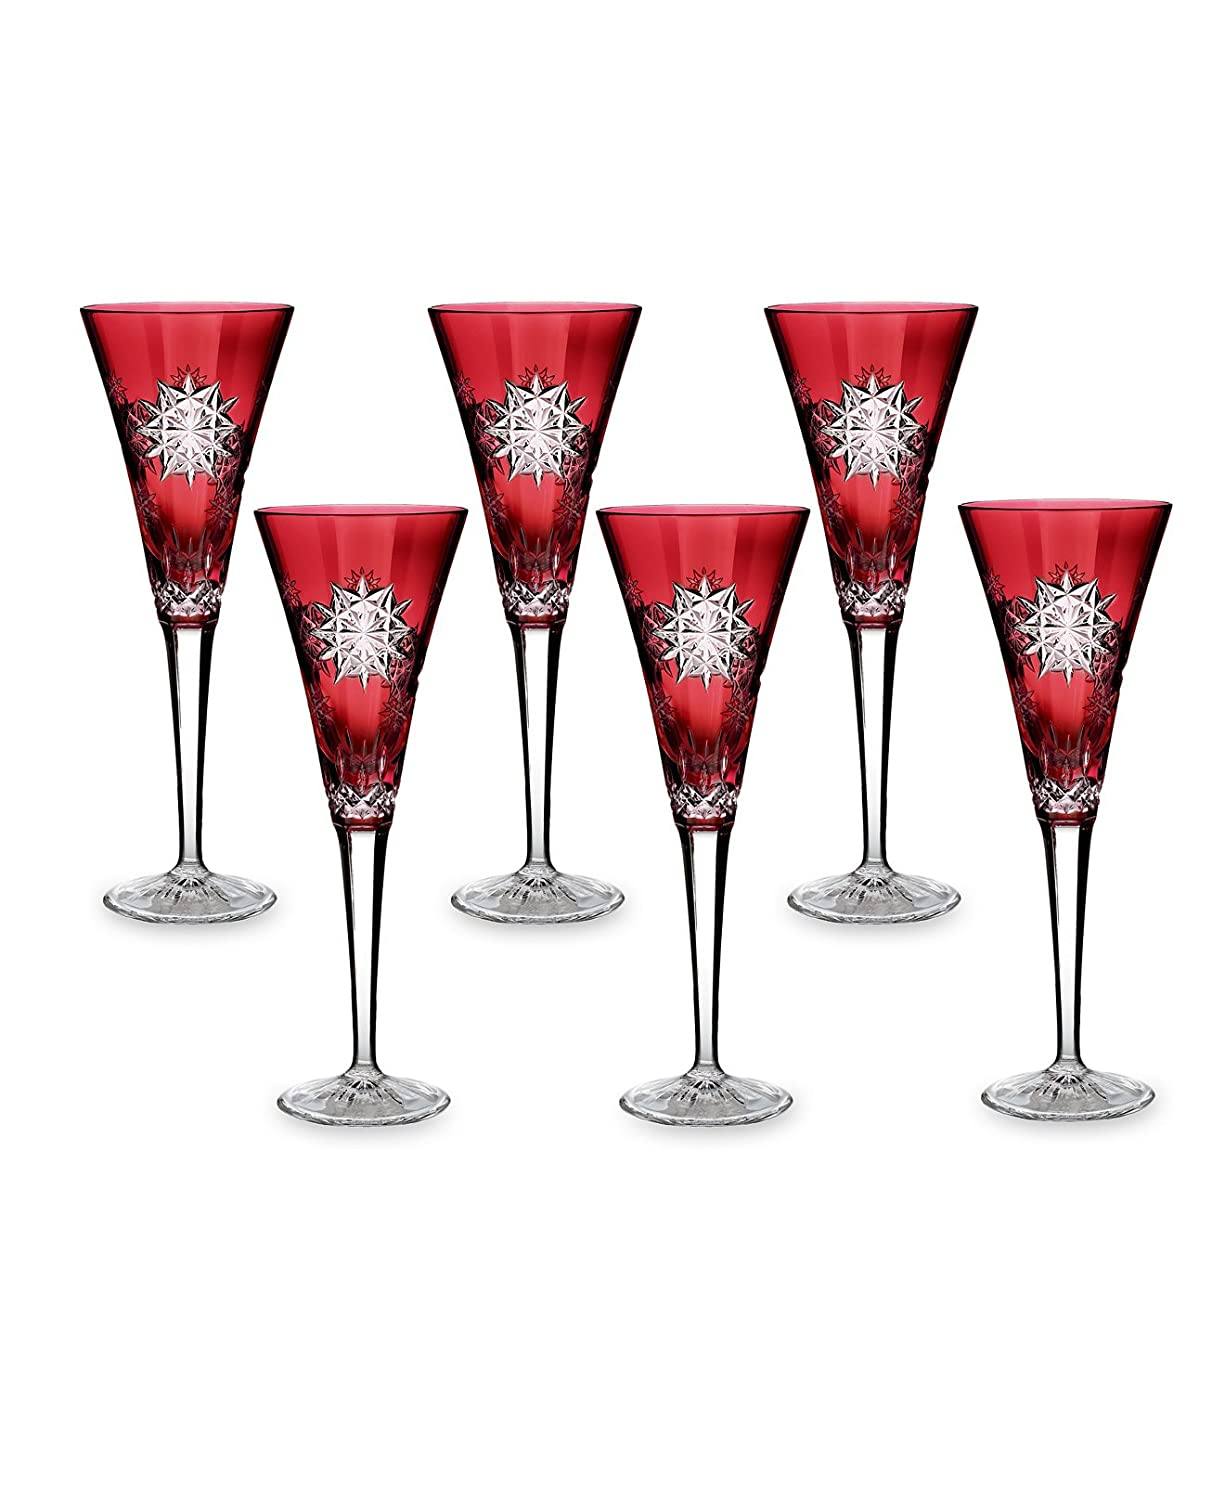 Christmas Tablescape Décor - Waterford Lismore Cut Crystal Snowflake Ruby Red Wishes for Joy 2011 Holiday Edition Champagne Flute - Set of 6